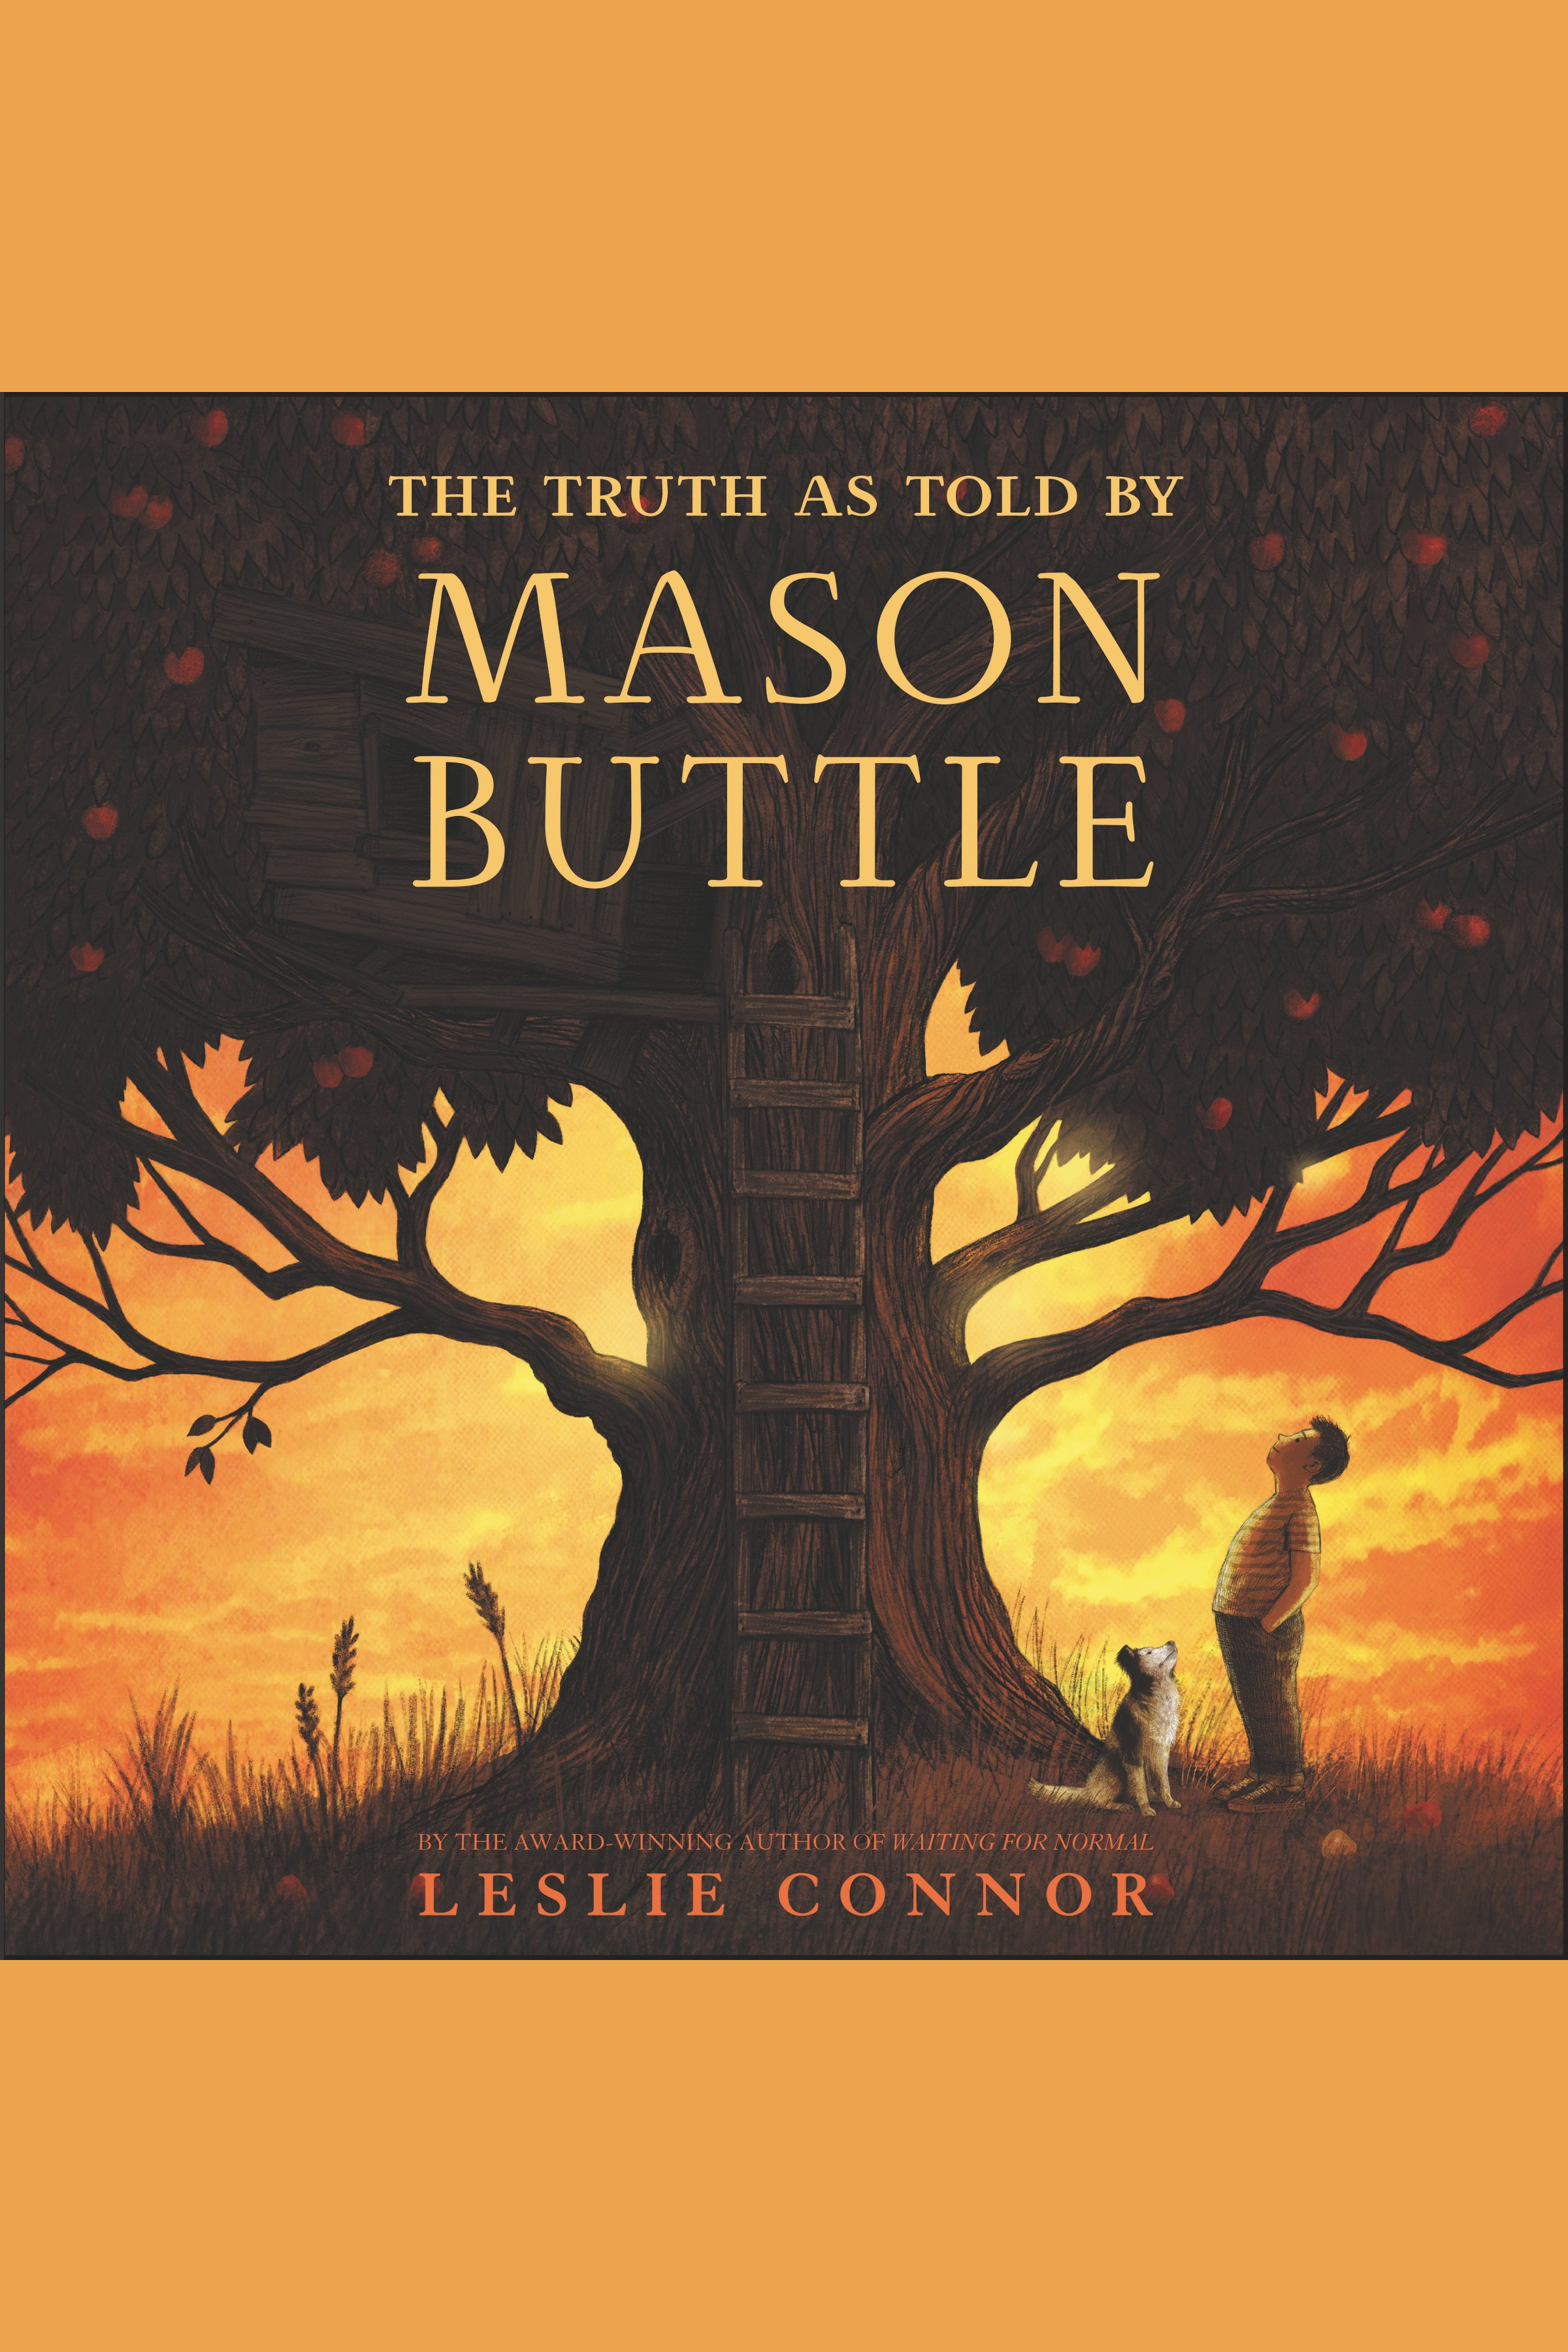 The truth as told by Mason Buttle cover image